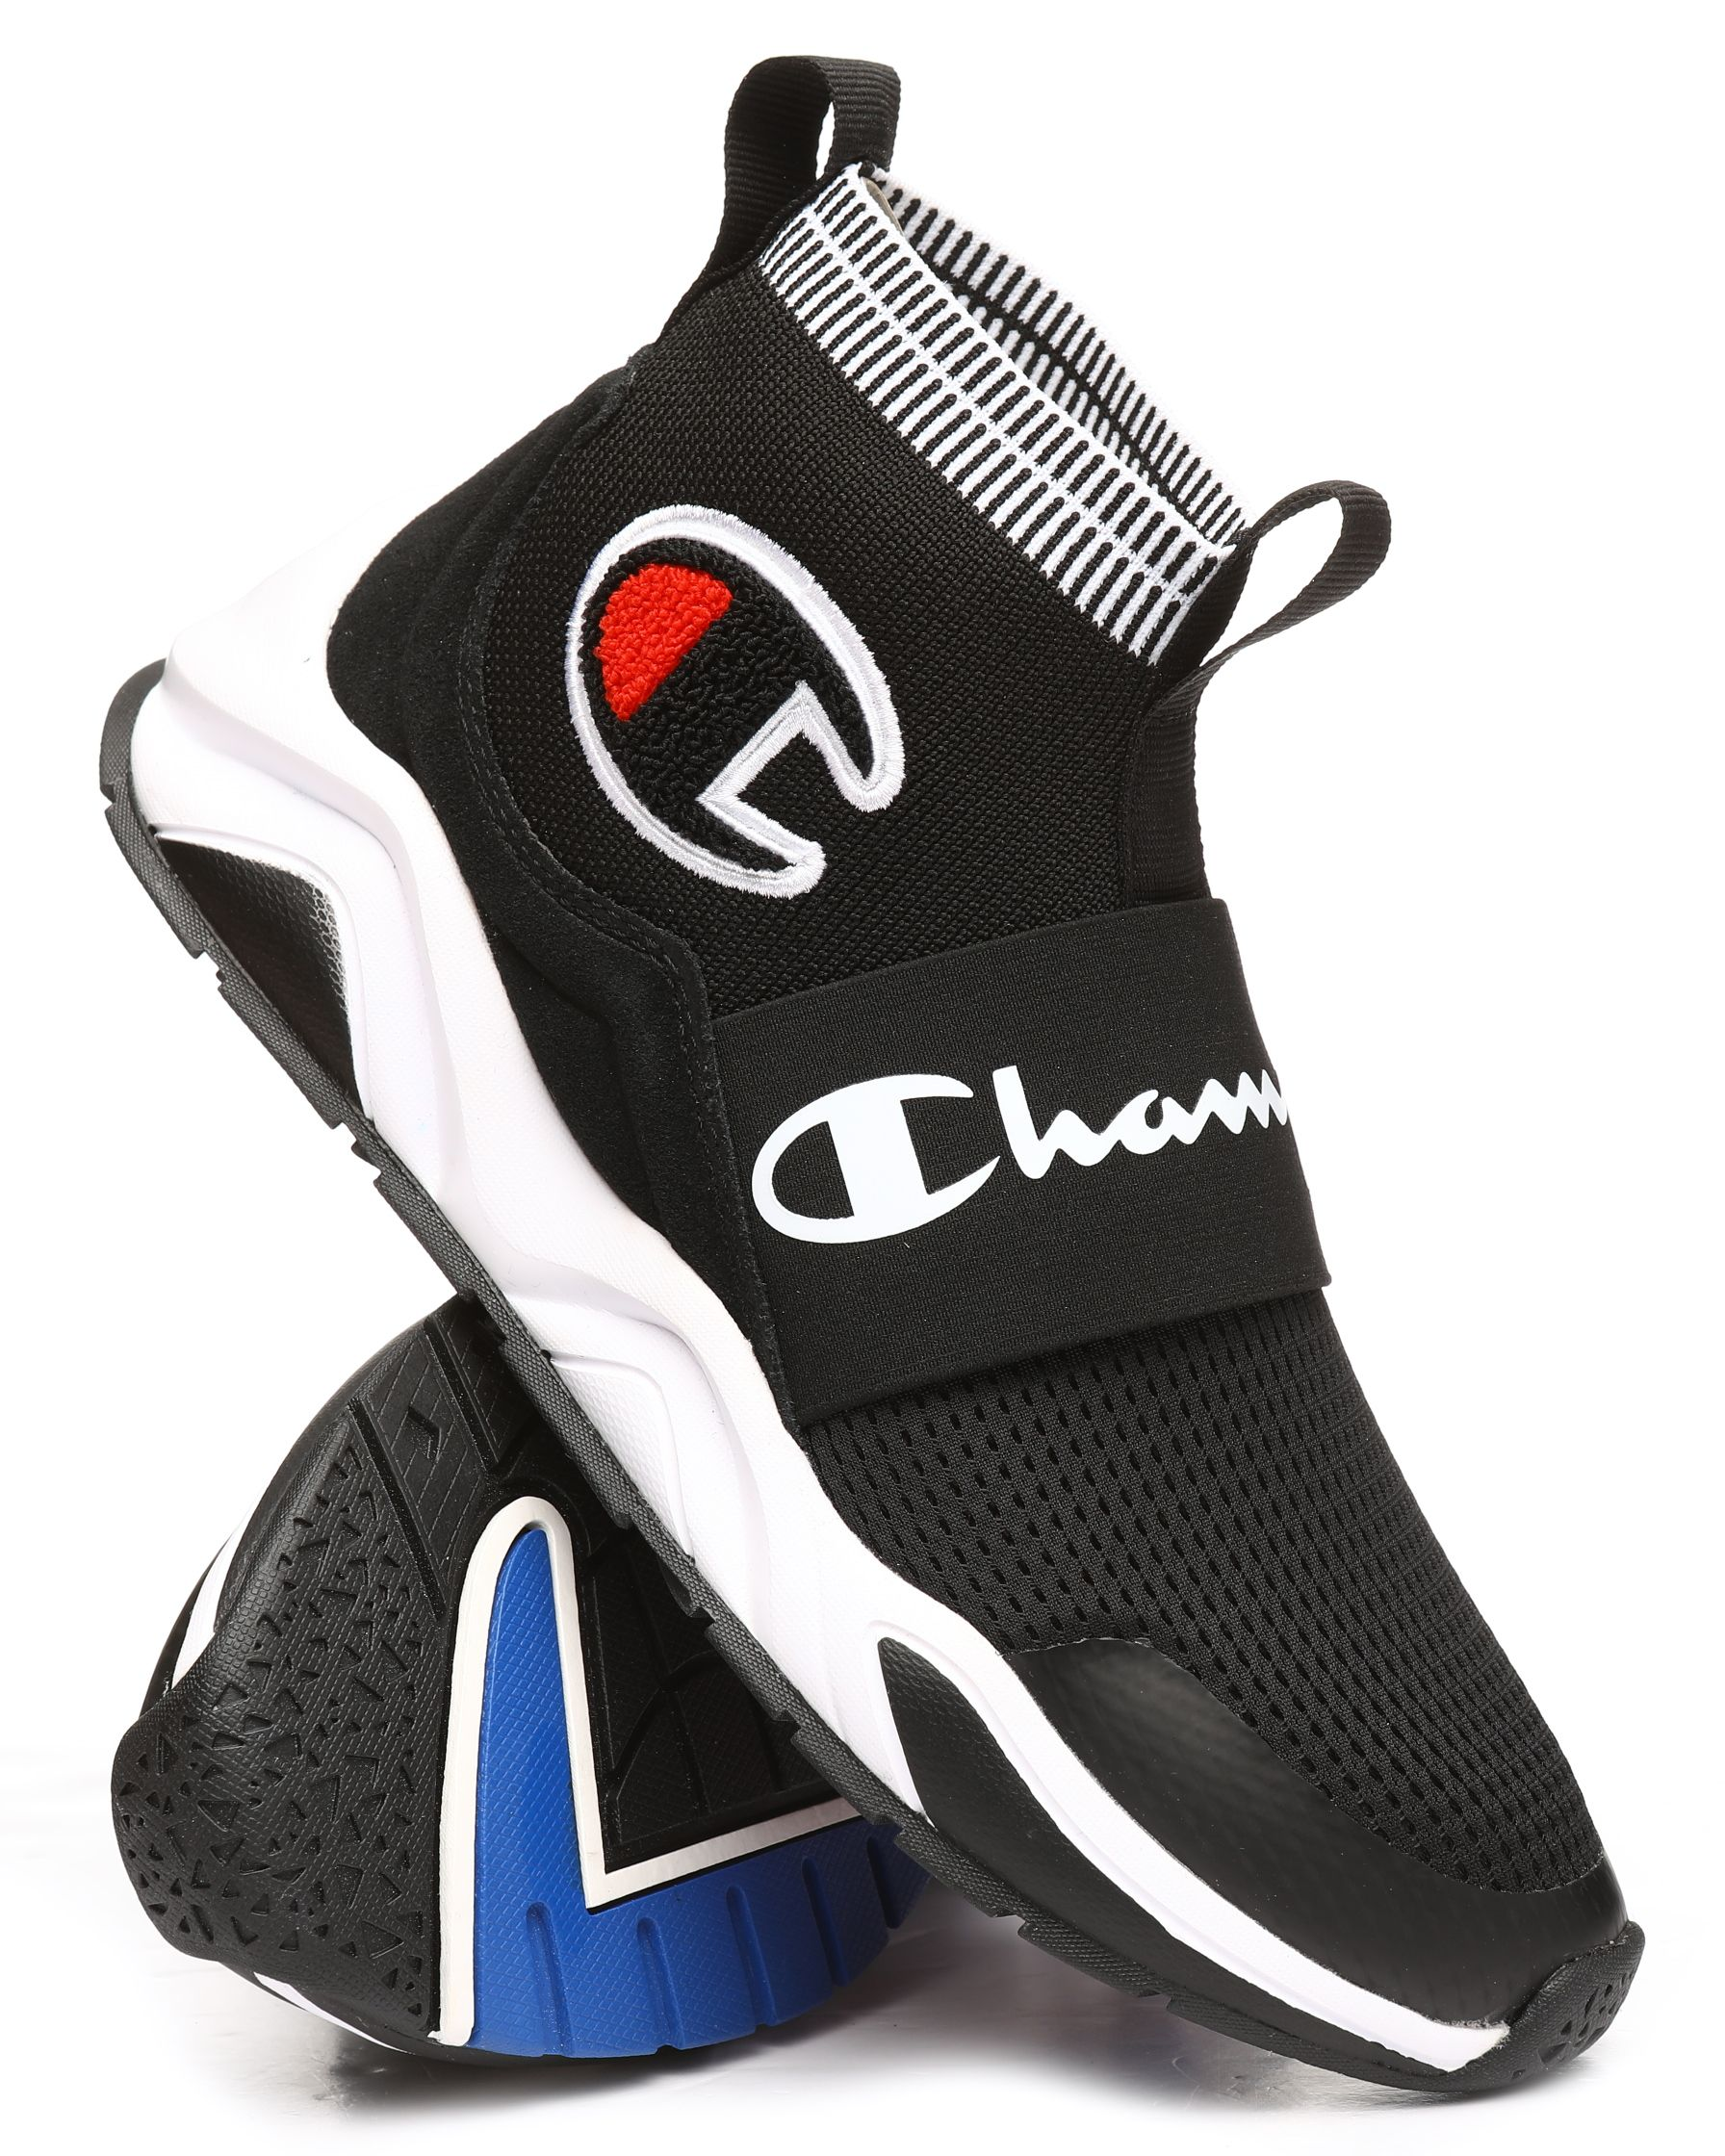 67dcd670e4d Rally Pro Sneakers from Champion at DrJays.com